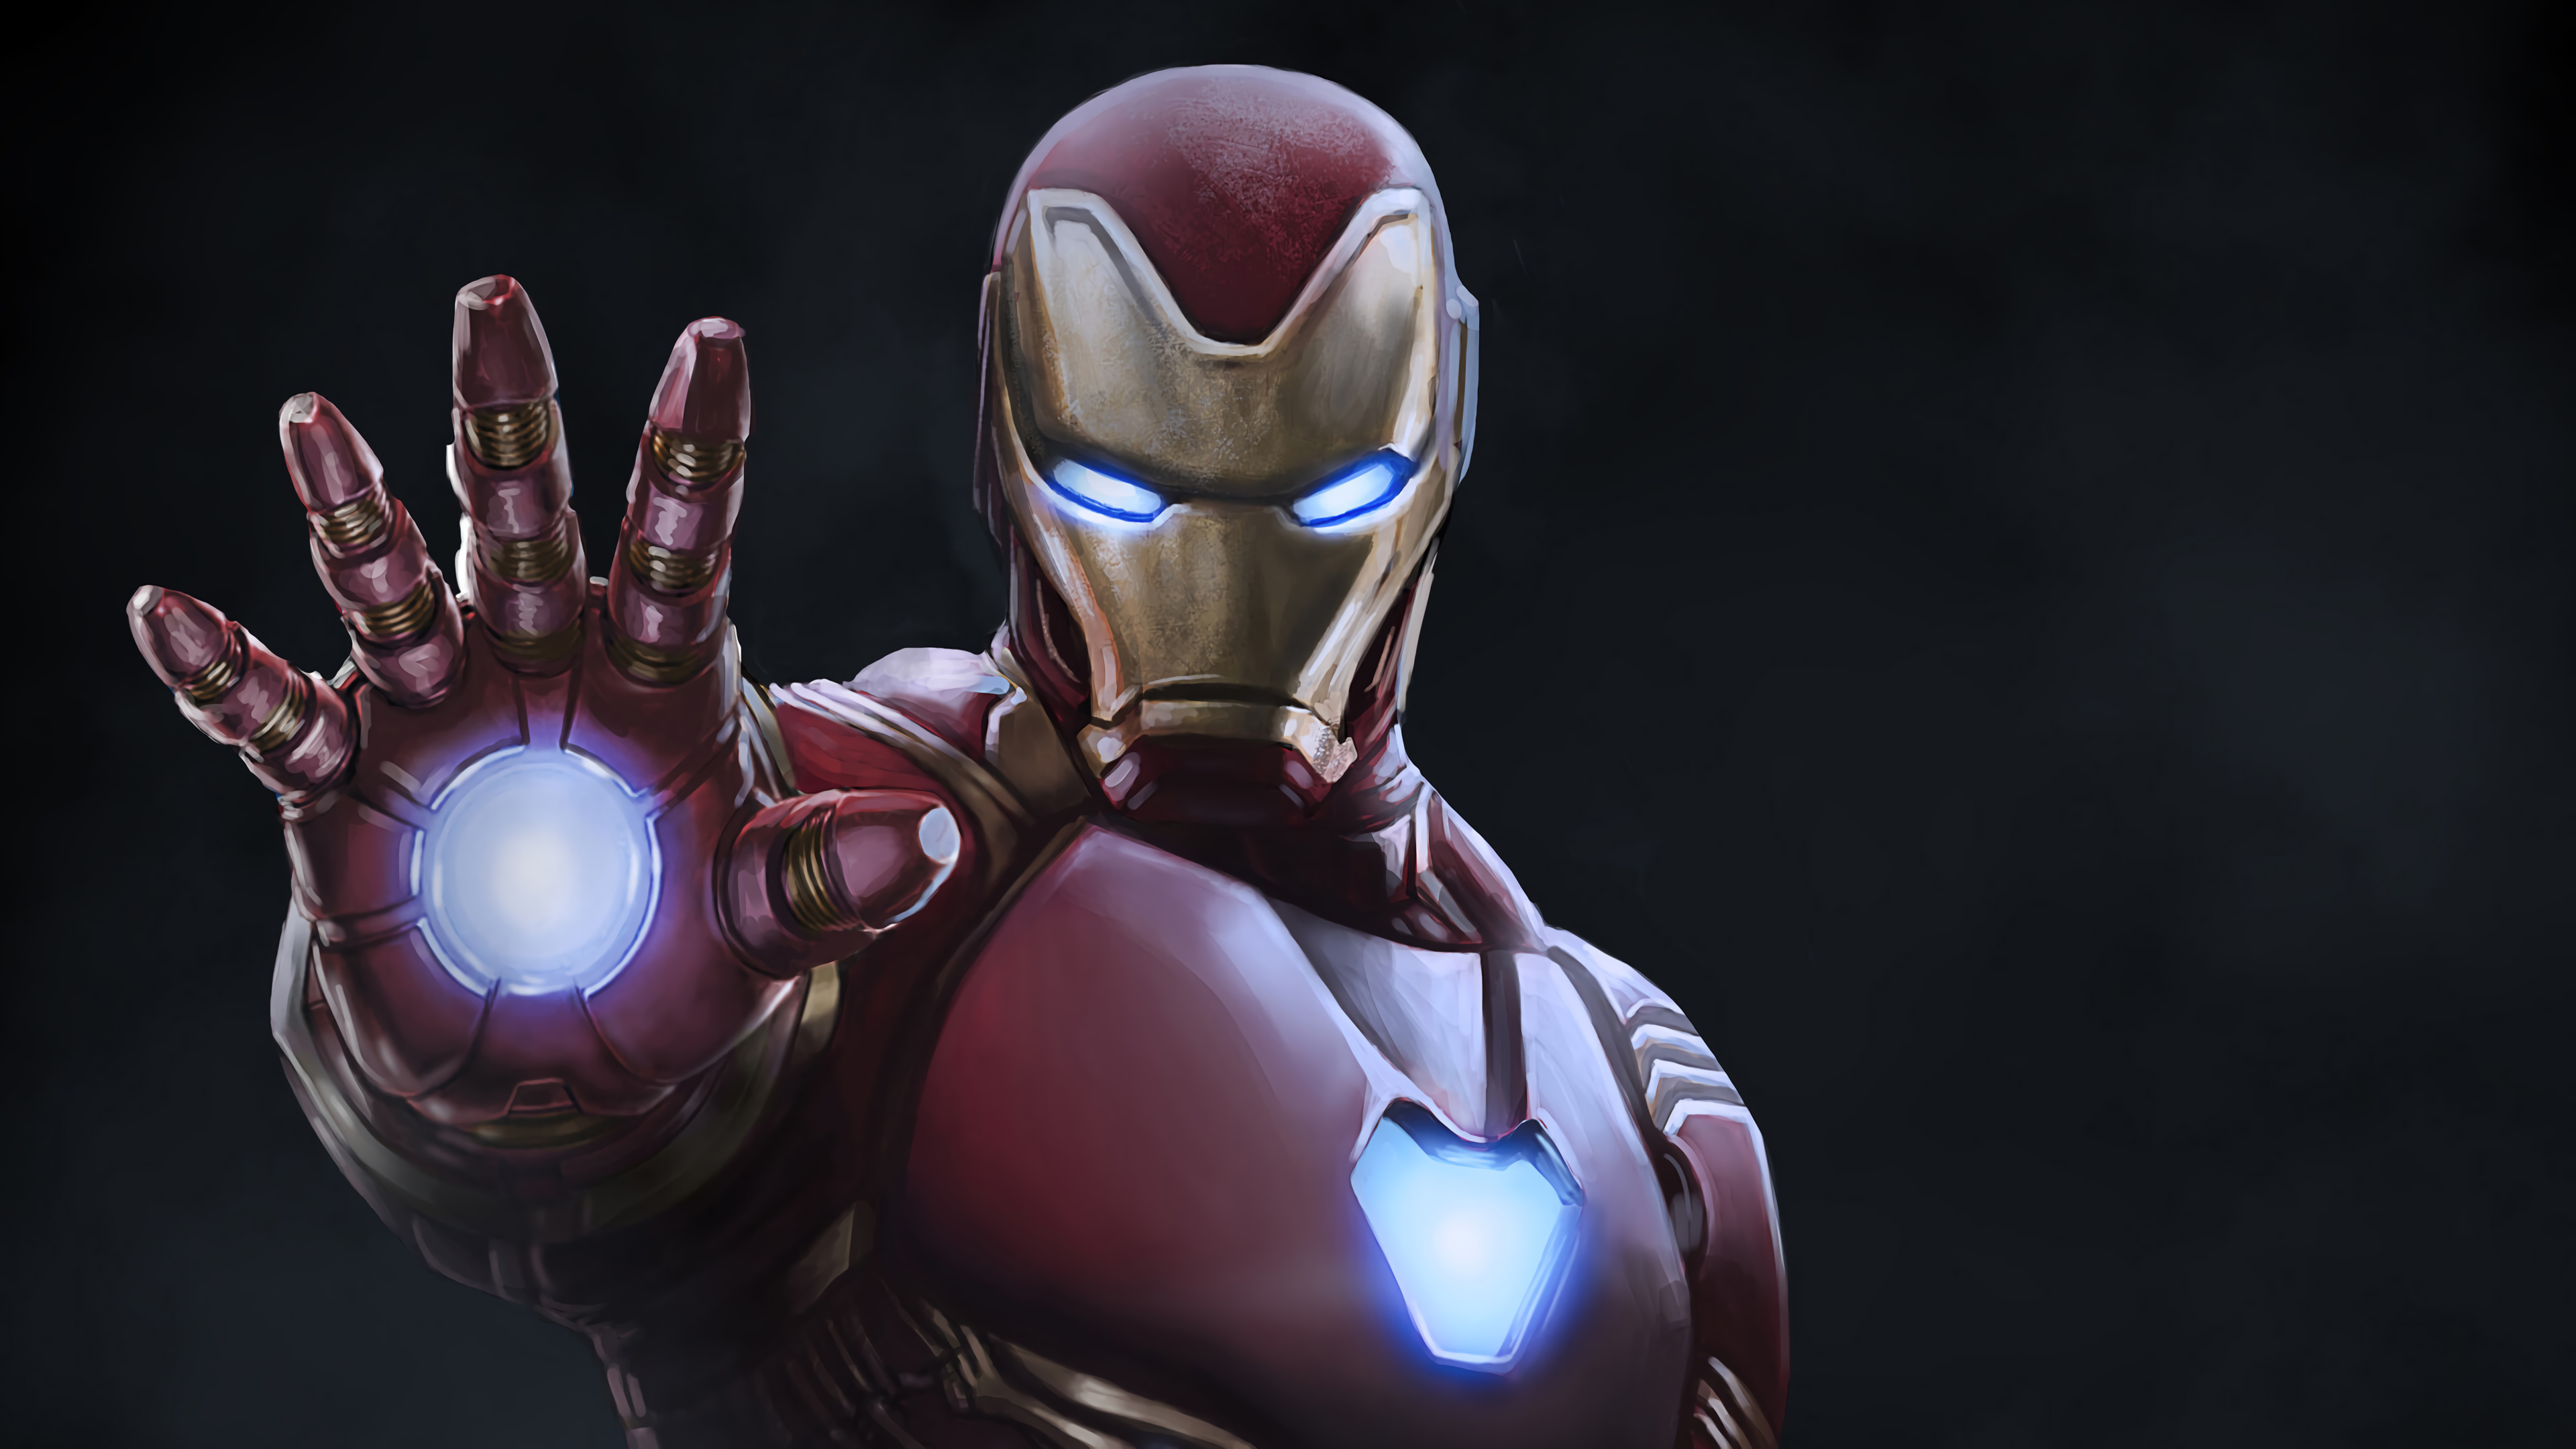 1920x1080 4k Iron Man Newart Laptop Full Hd 1080p Hd 4k Wallpapers Images Backgrounds Photos And Pictures